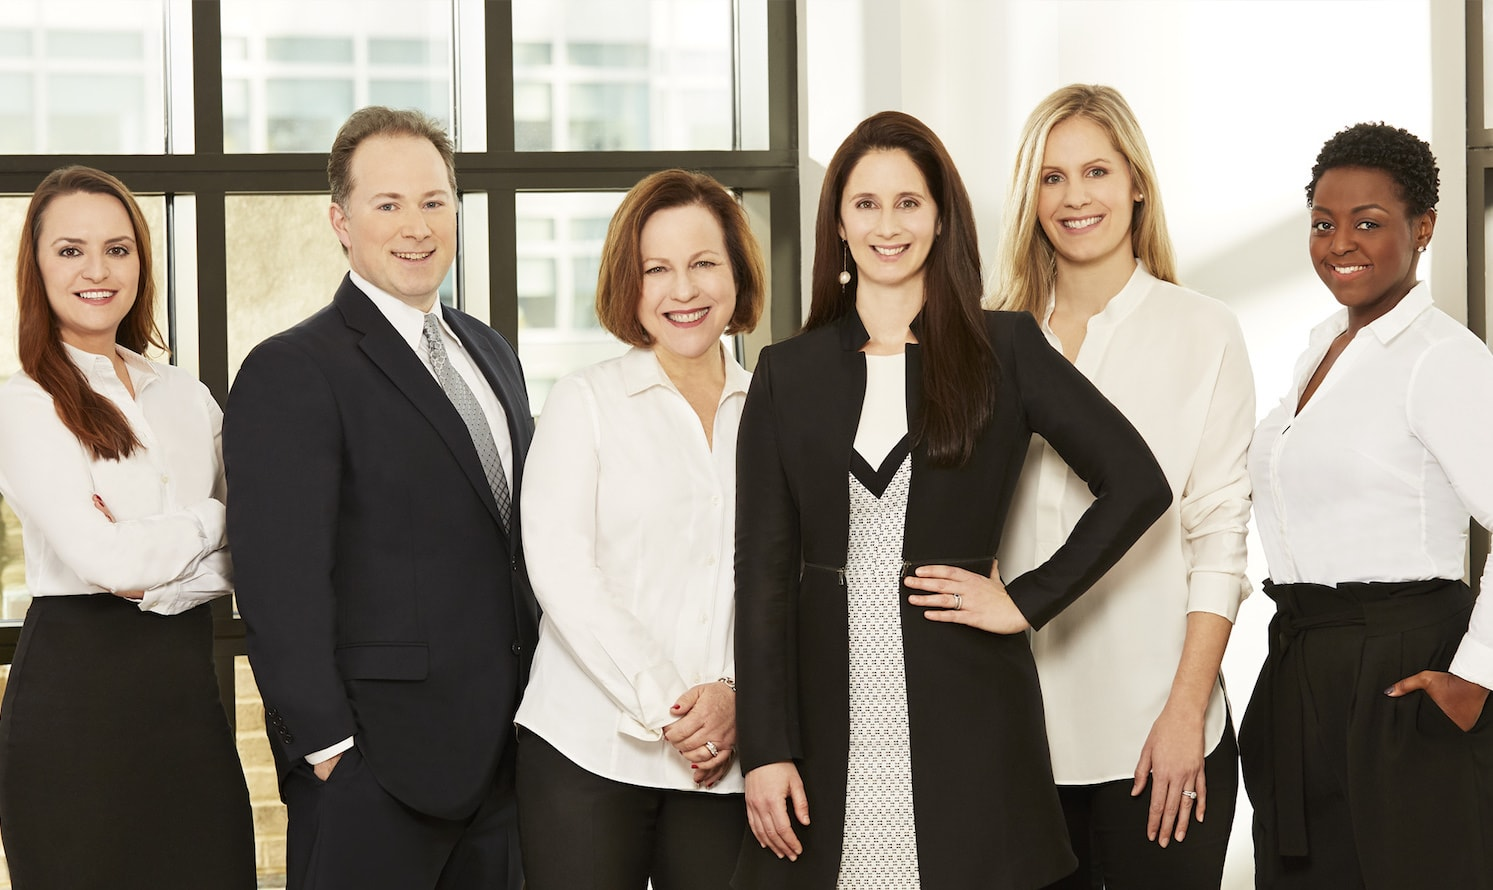 The BASS Team at The Corcoran Group